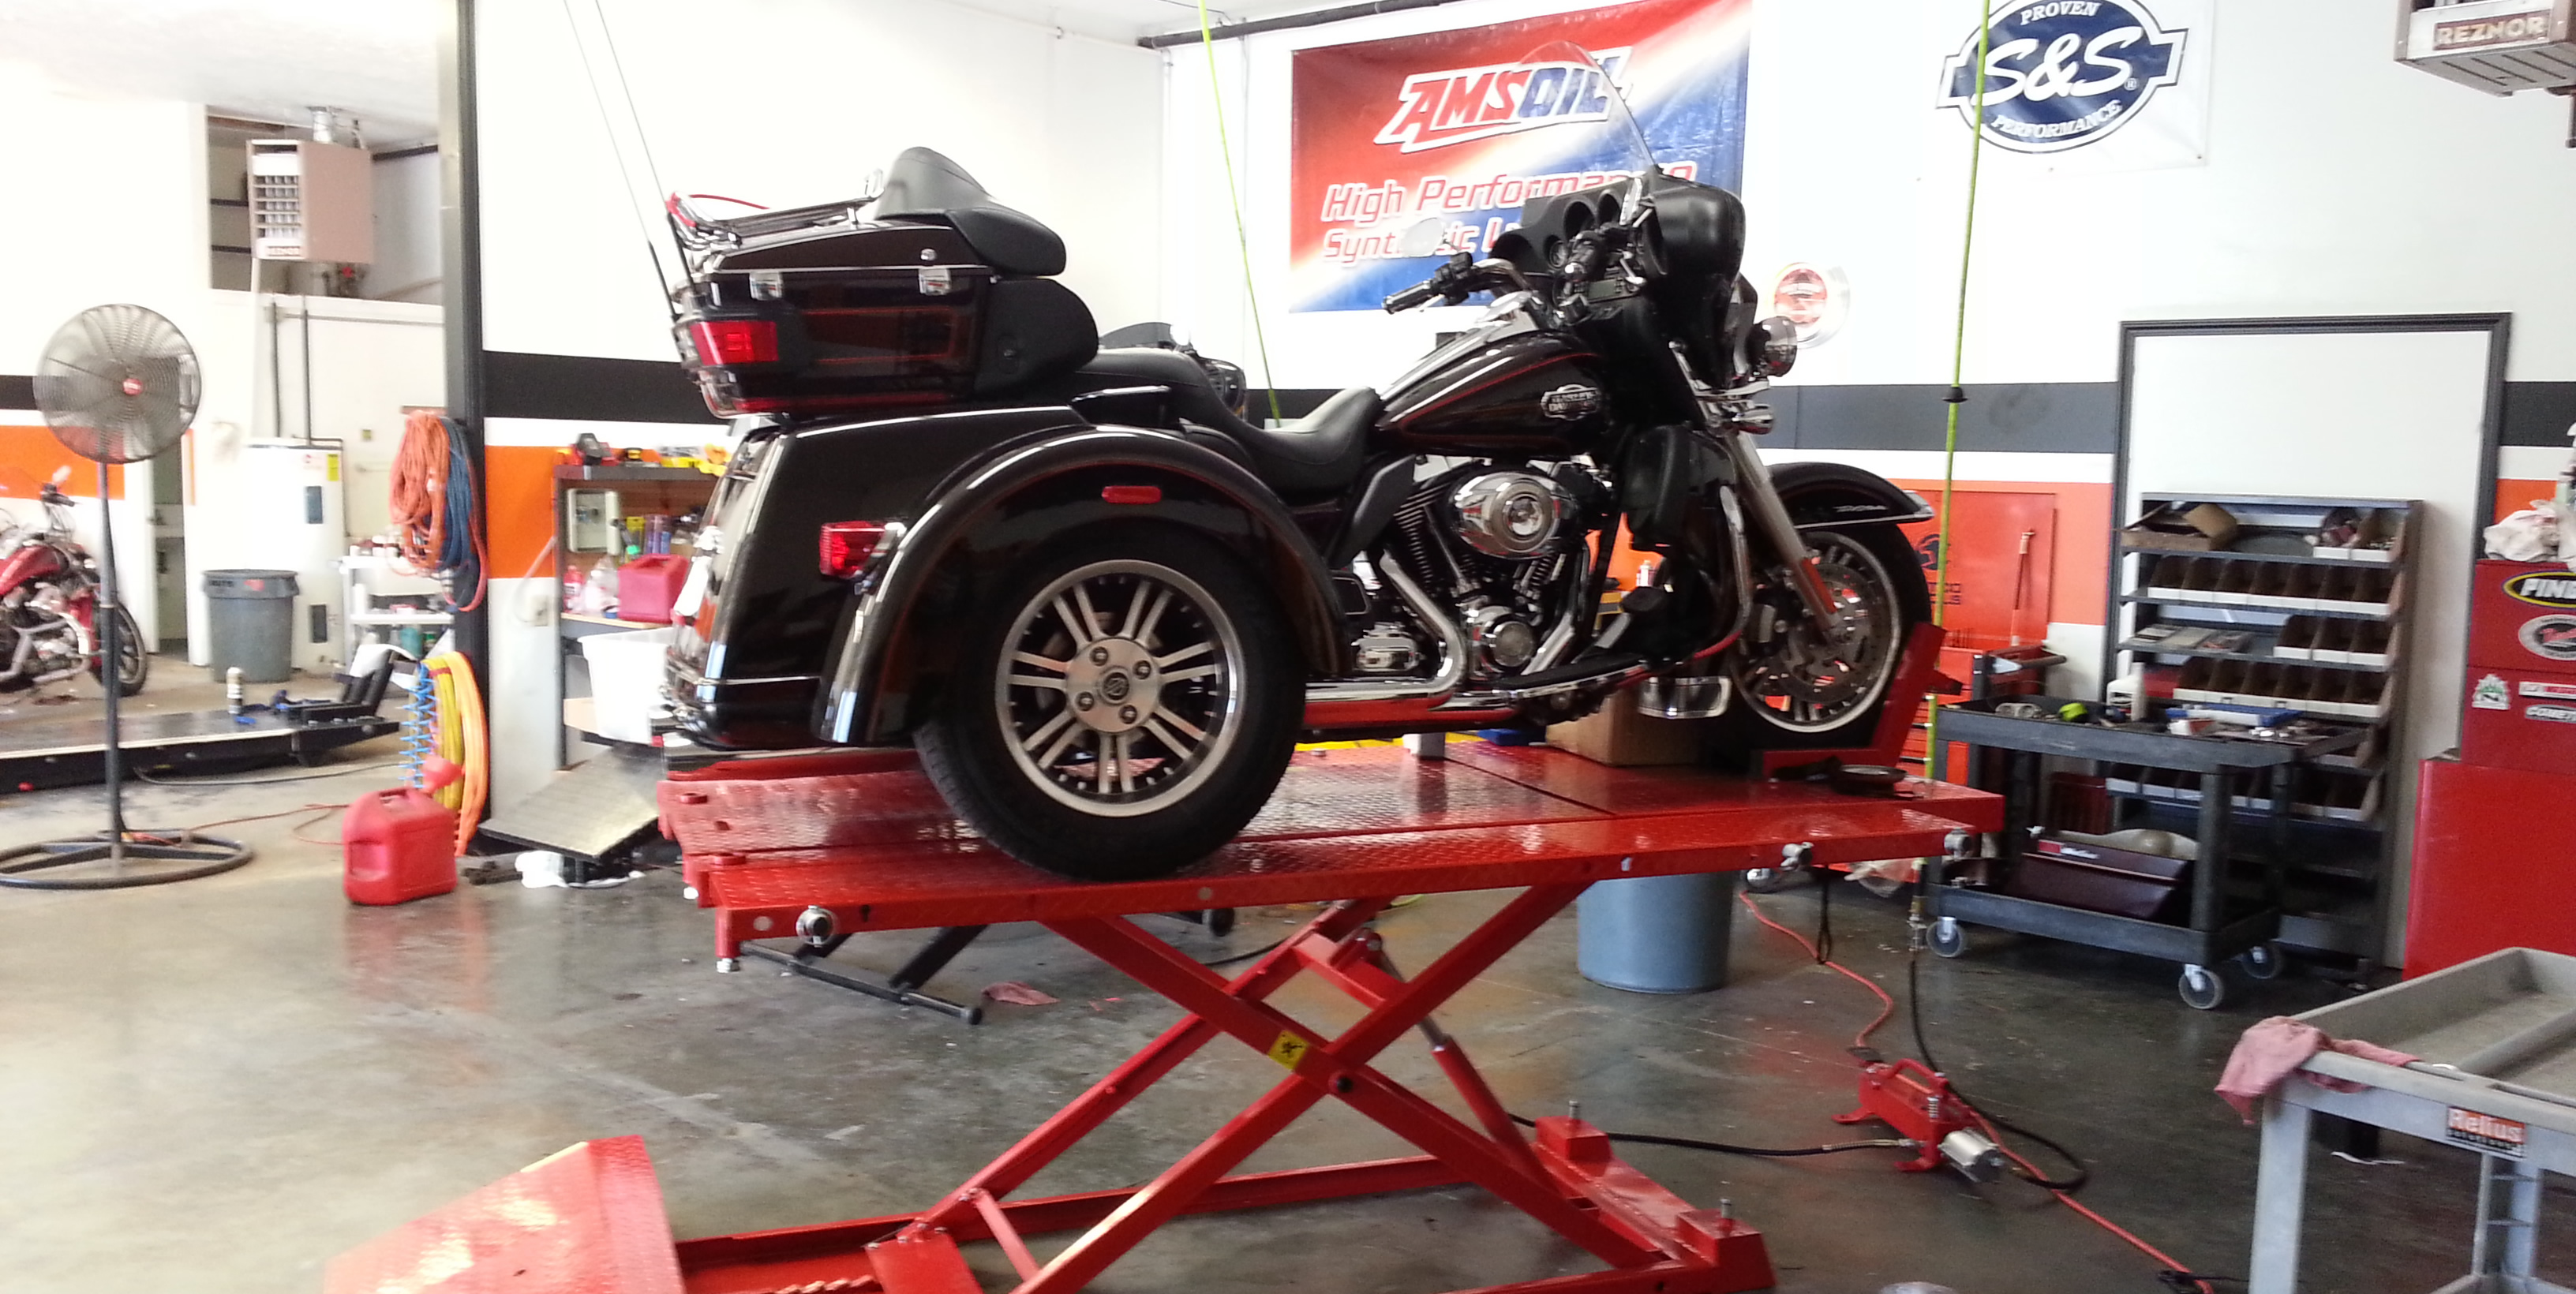 Harley Davidson Trike on the Lift